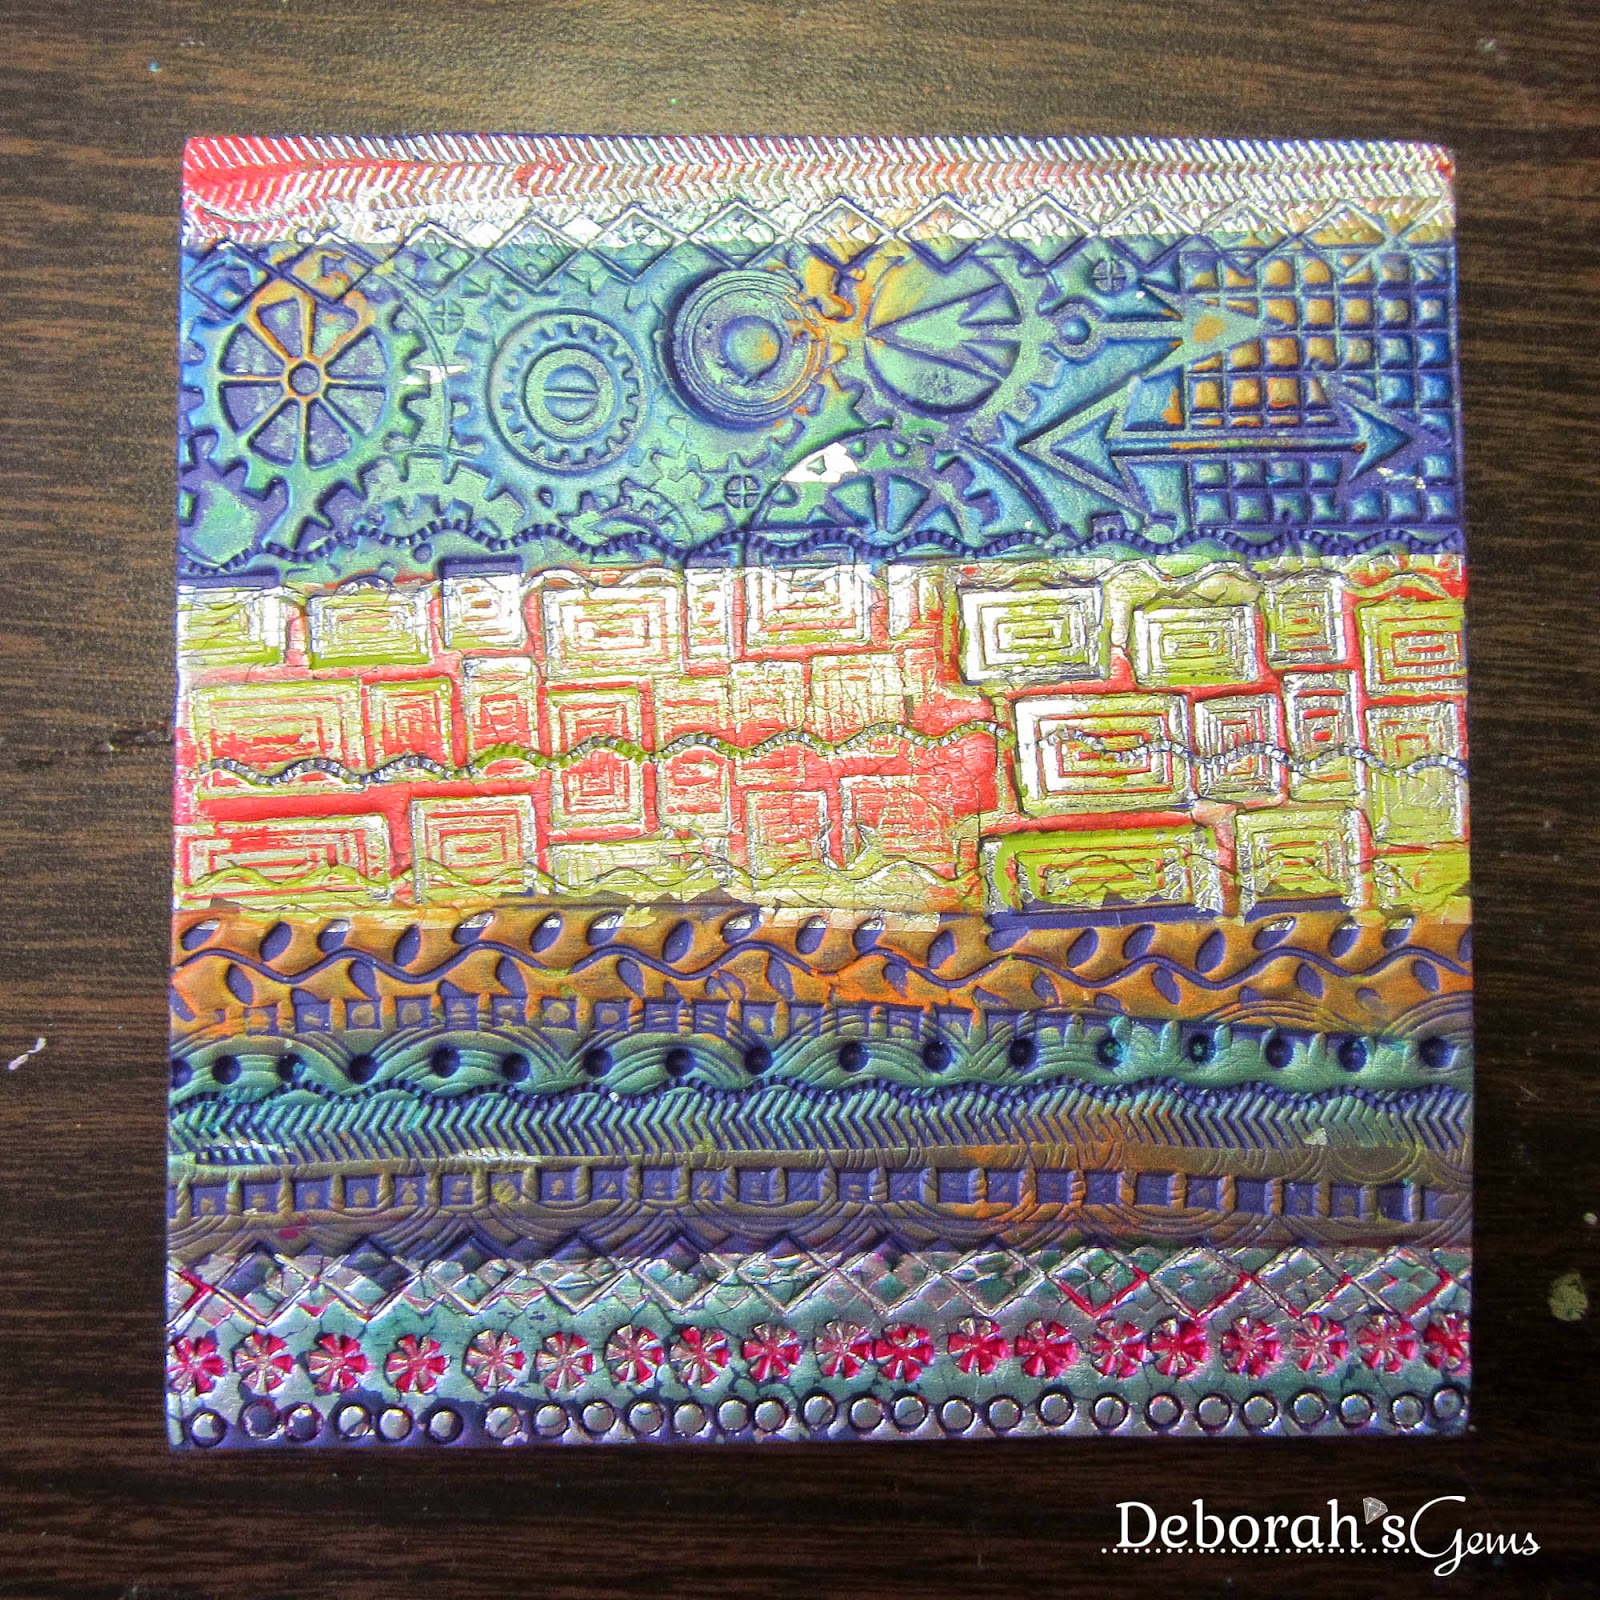 Deborah's Quilt - photo by Deborah Frings - Deborah's Gem